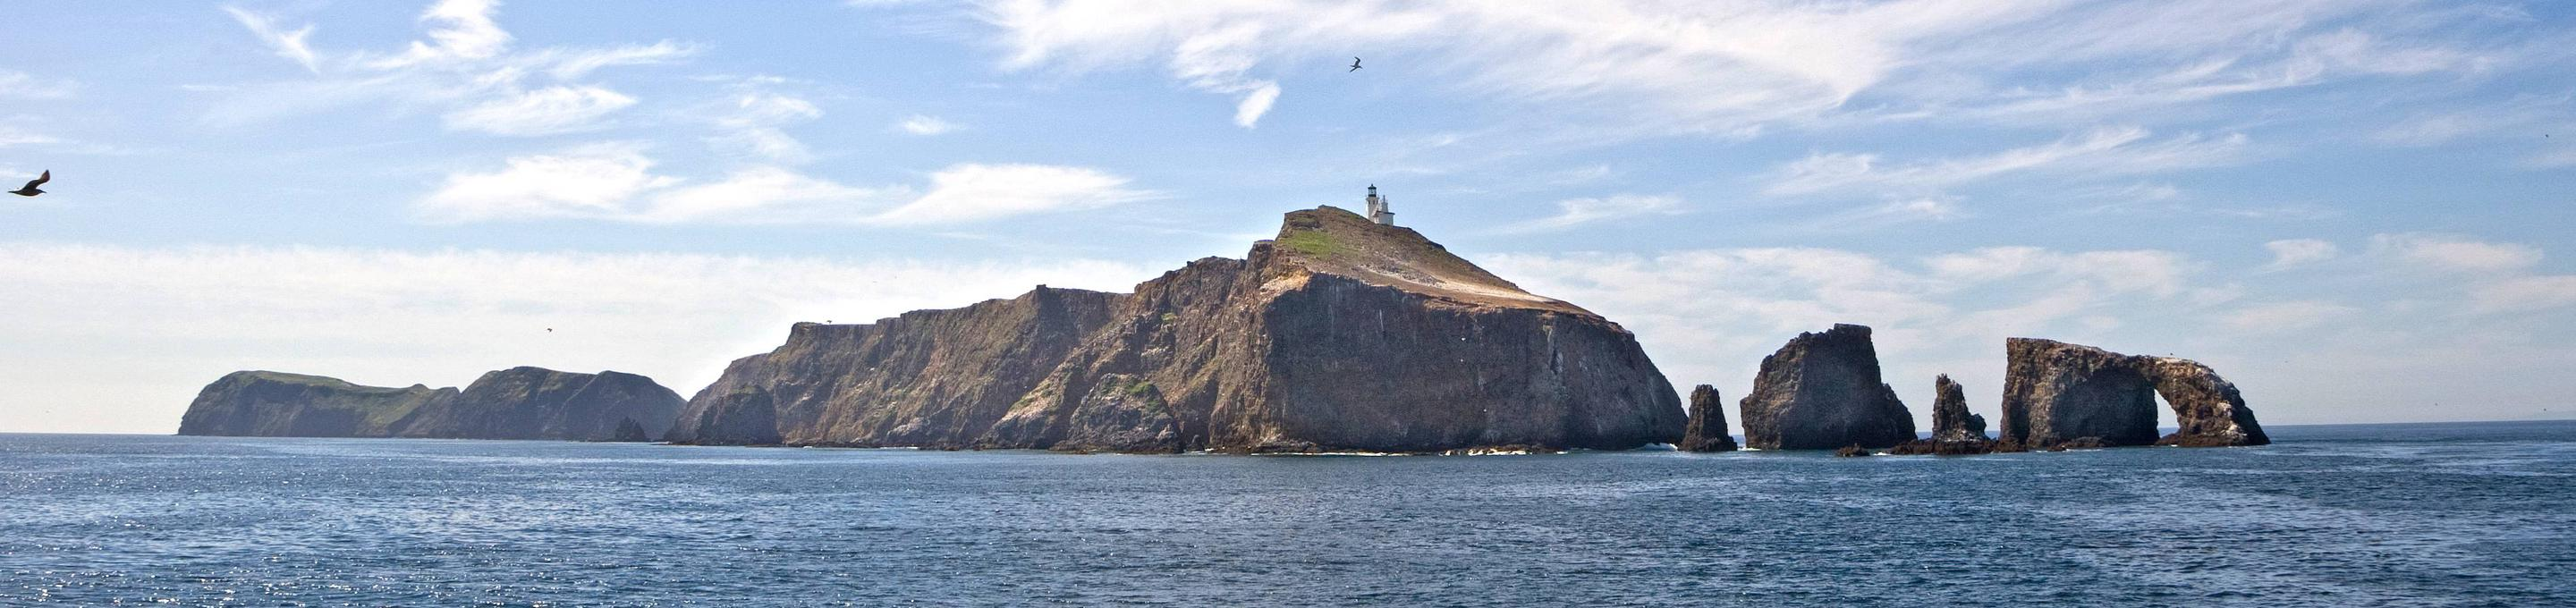 Small island with arch rock and lighthouse on top.Channel Islands National Park